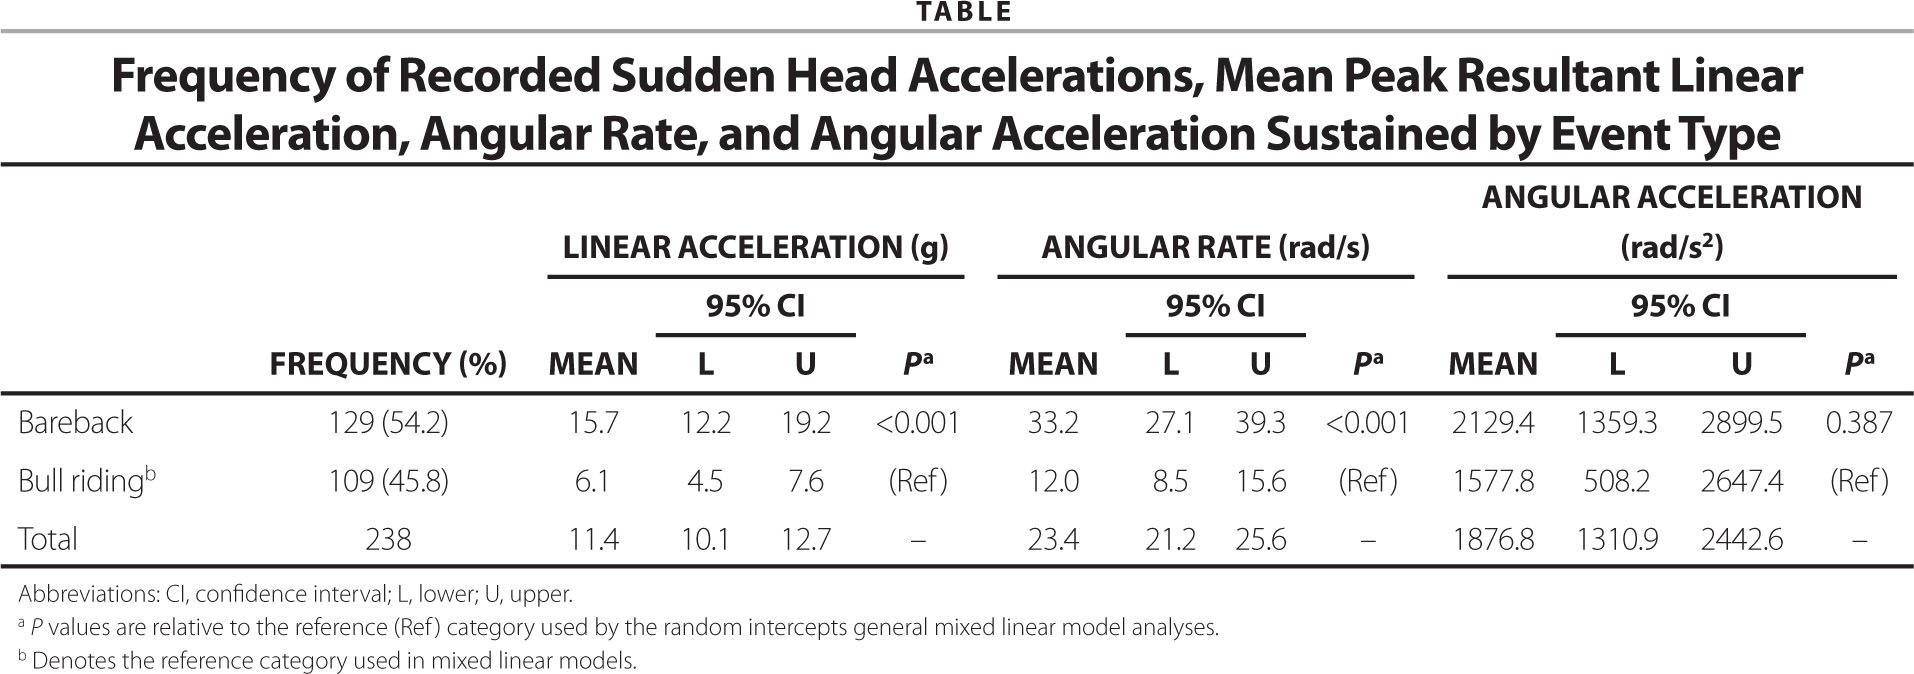 Frequency of Recorded Sudden Head Accelerations, Mean Peak Resultant Linear Acceleration, Angular Rate, and Angular Acceleration Sustained by Event Type